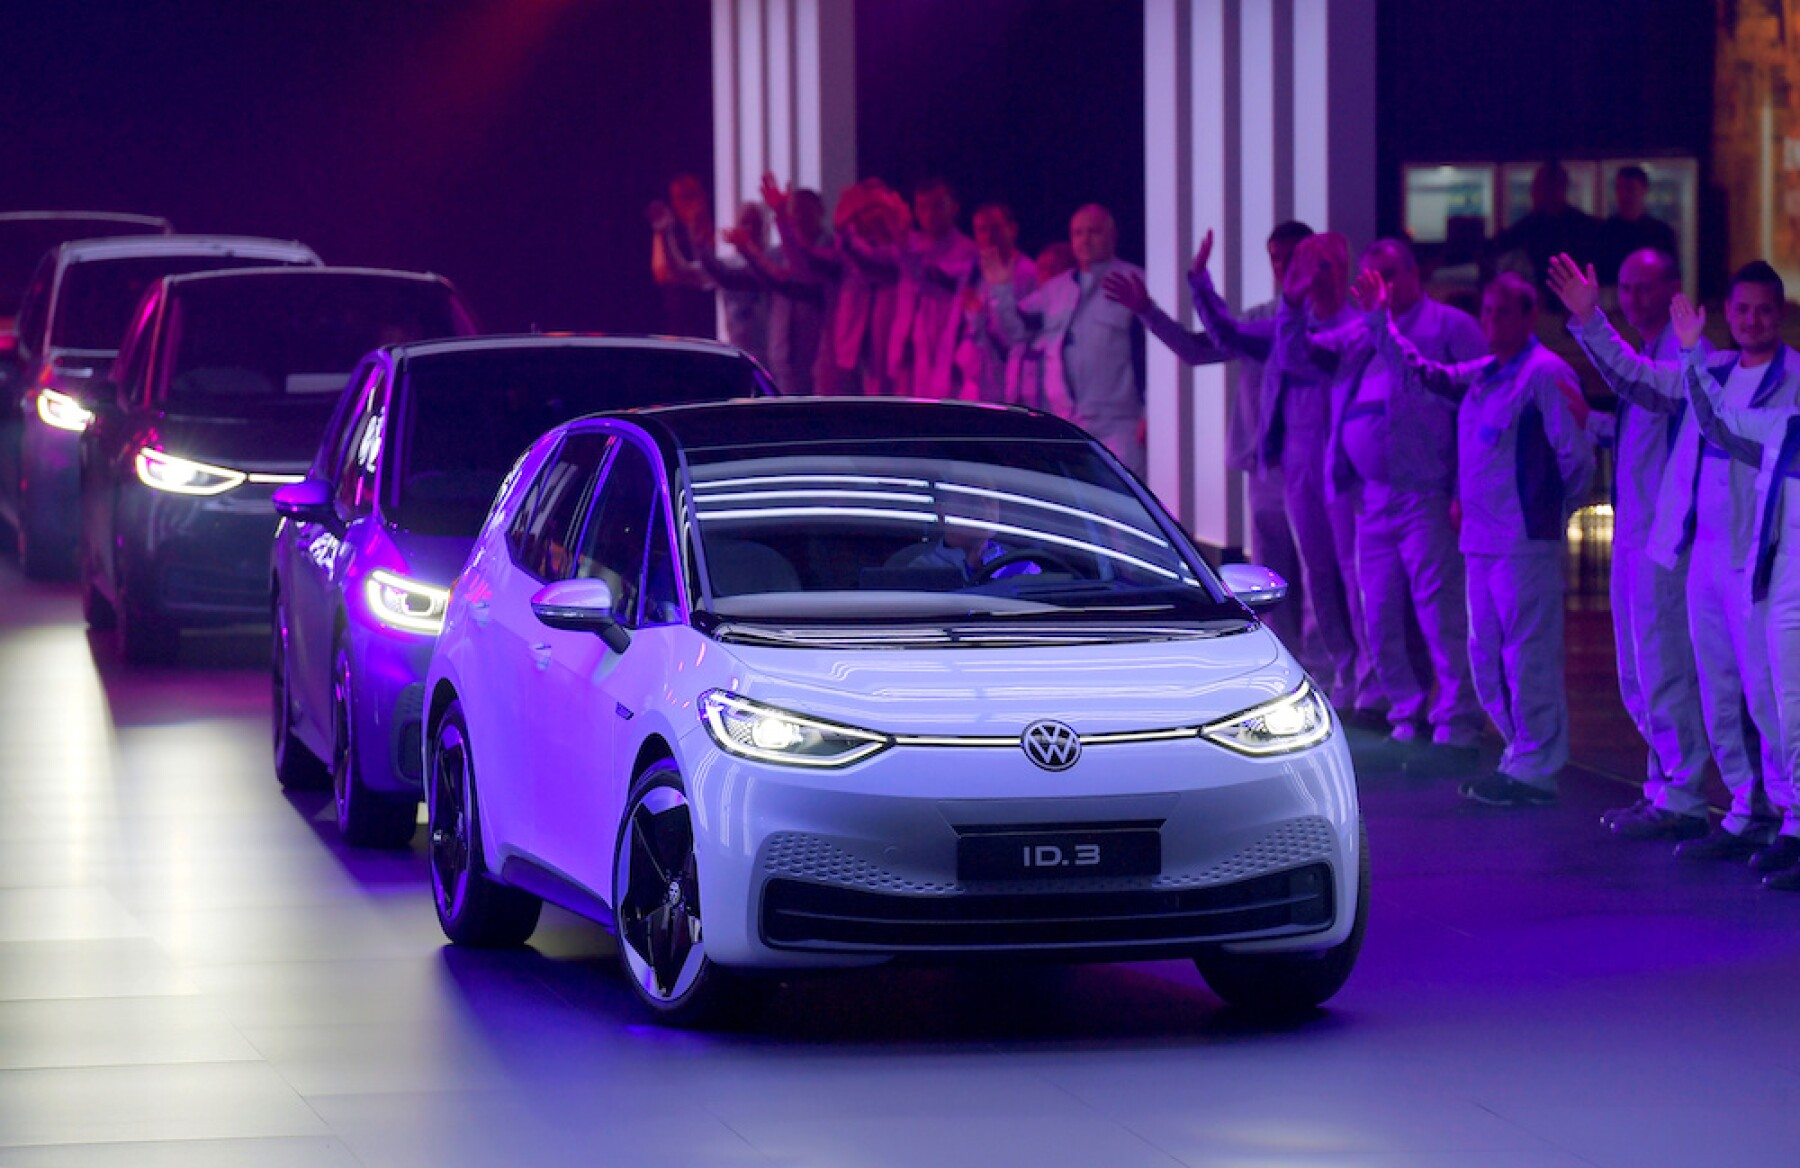 FILE PHOTO : New cars drive during a ceremony marking start of the production of a new electric Volkswagen model ID.3 in Zwickau